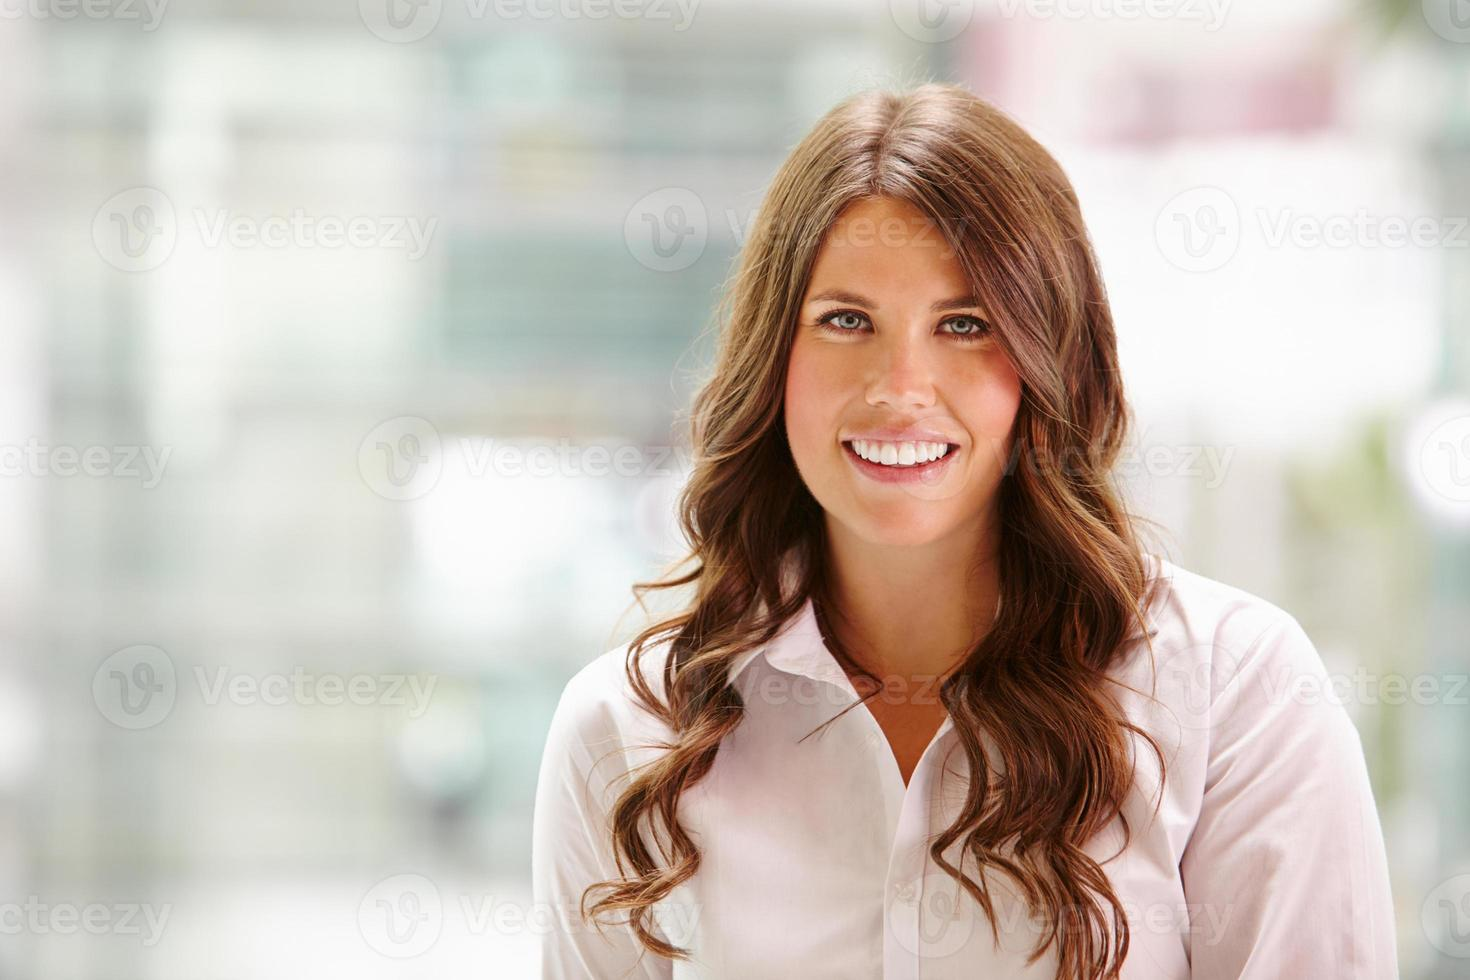 Head and shoulders portrait of a young businesswoman smiling photo